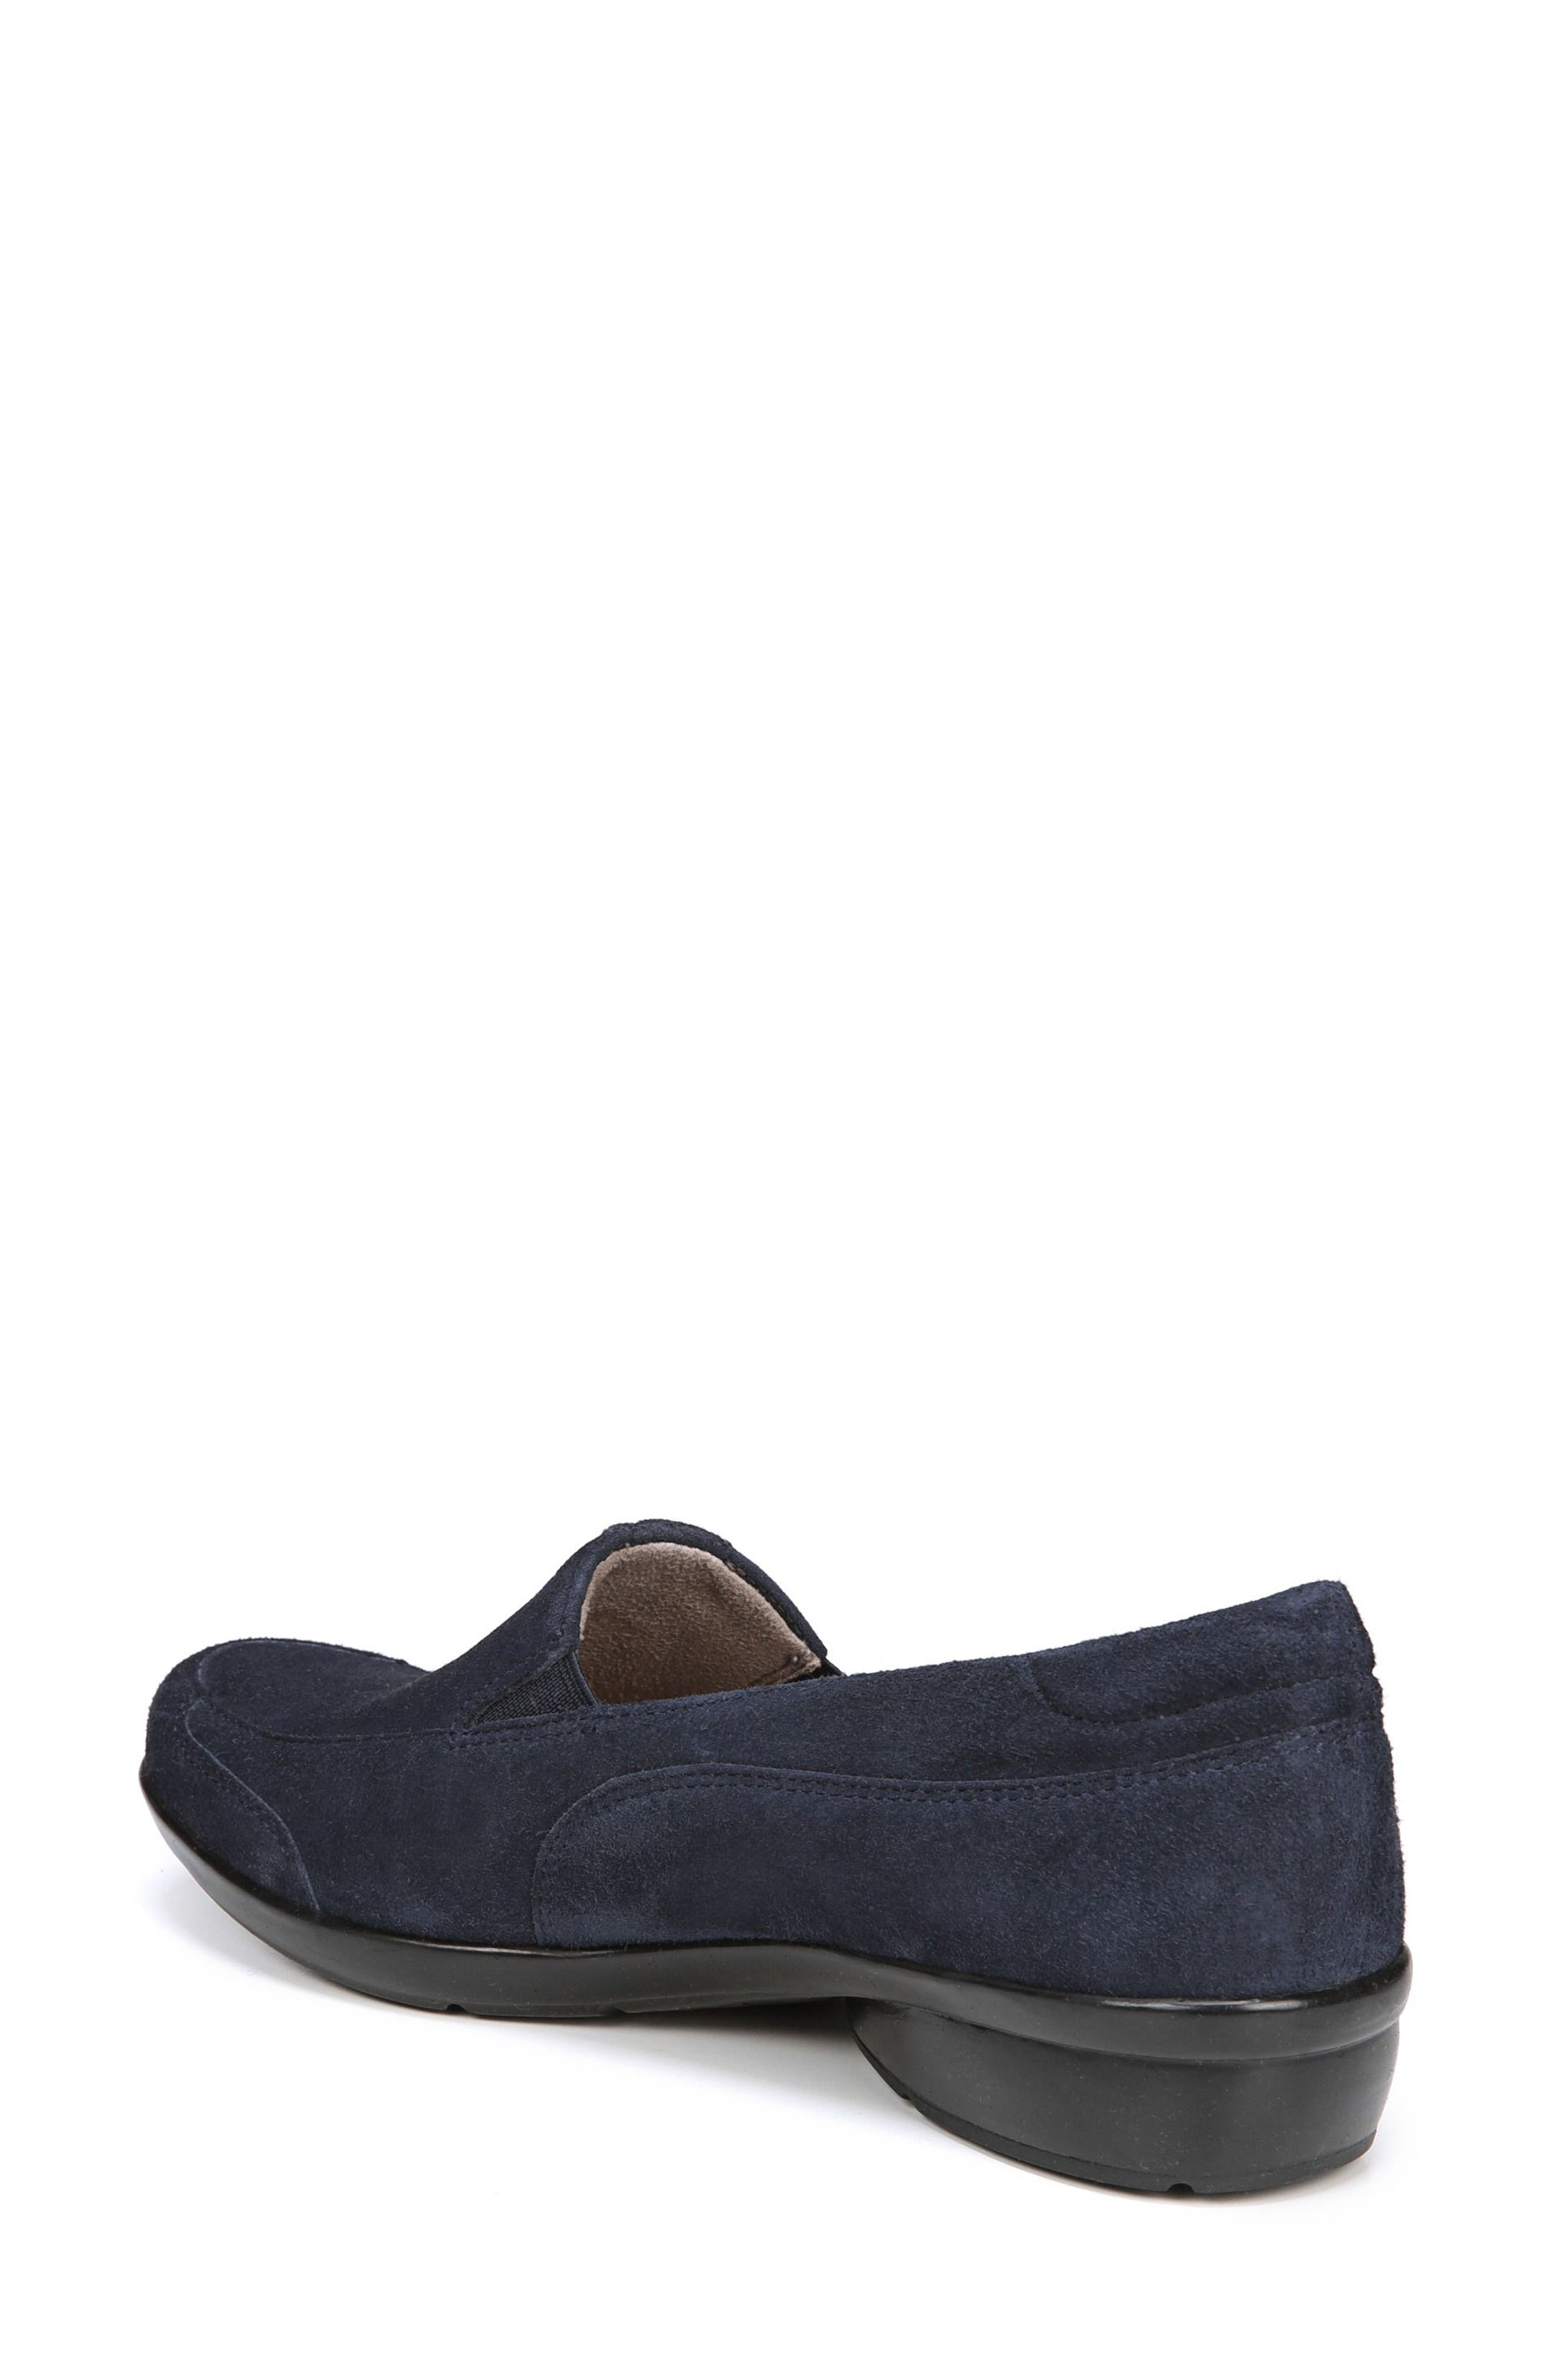 'Channing' Loafer,                             Alternate thumbnail 2, color,                             Navy Suede